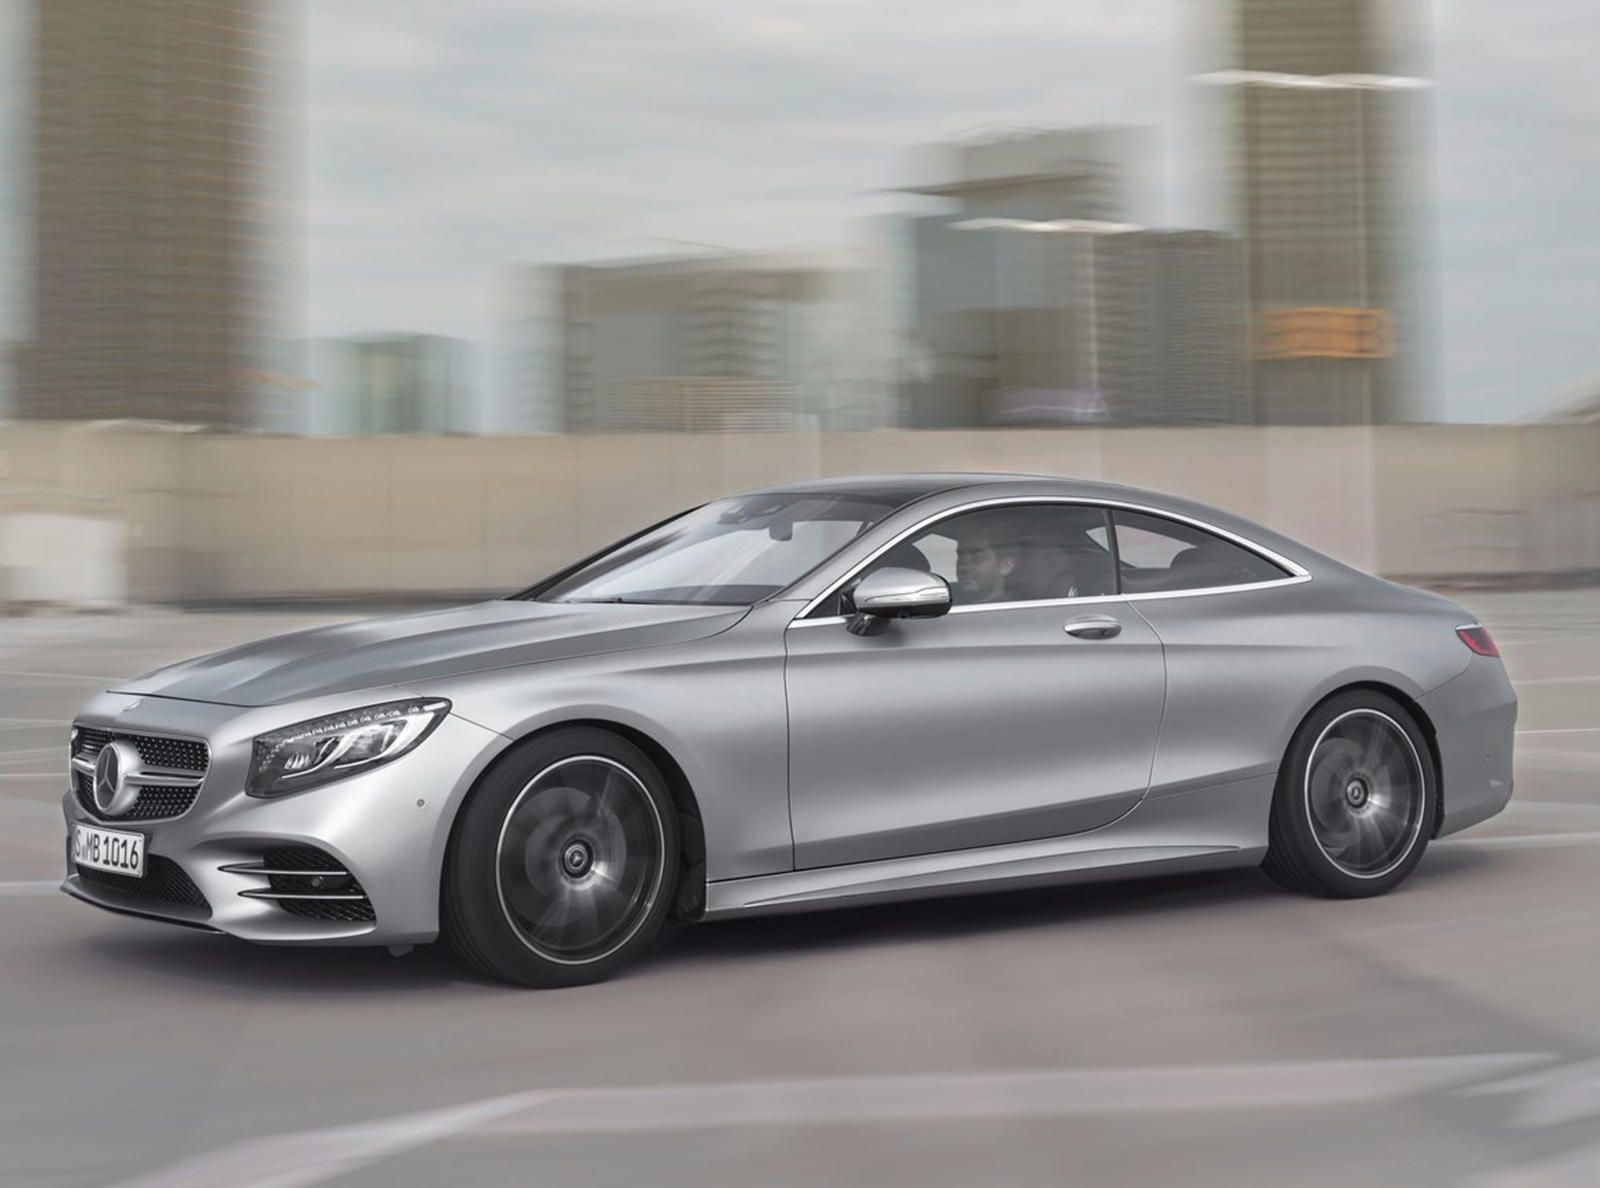 Mercedes S Class Coupe And Convertible Are On Borrowed Time Only A New S Class Sedan Is Due In 2020 Mercedes S Class Coupe Mercedes S Class Mercedes Models